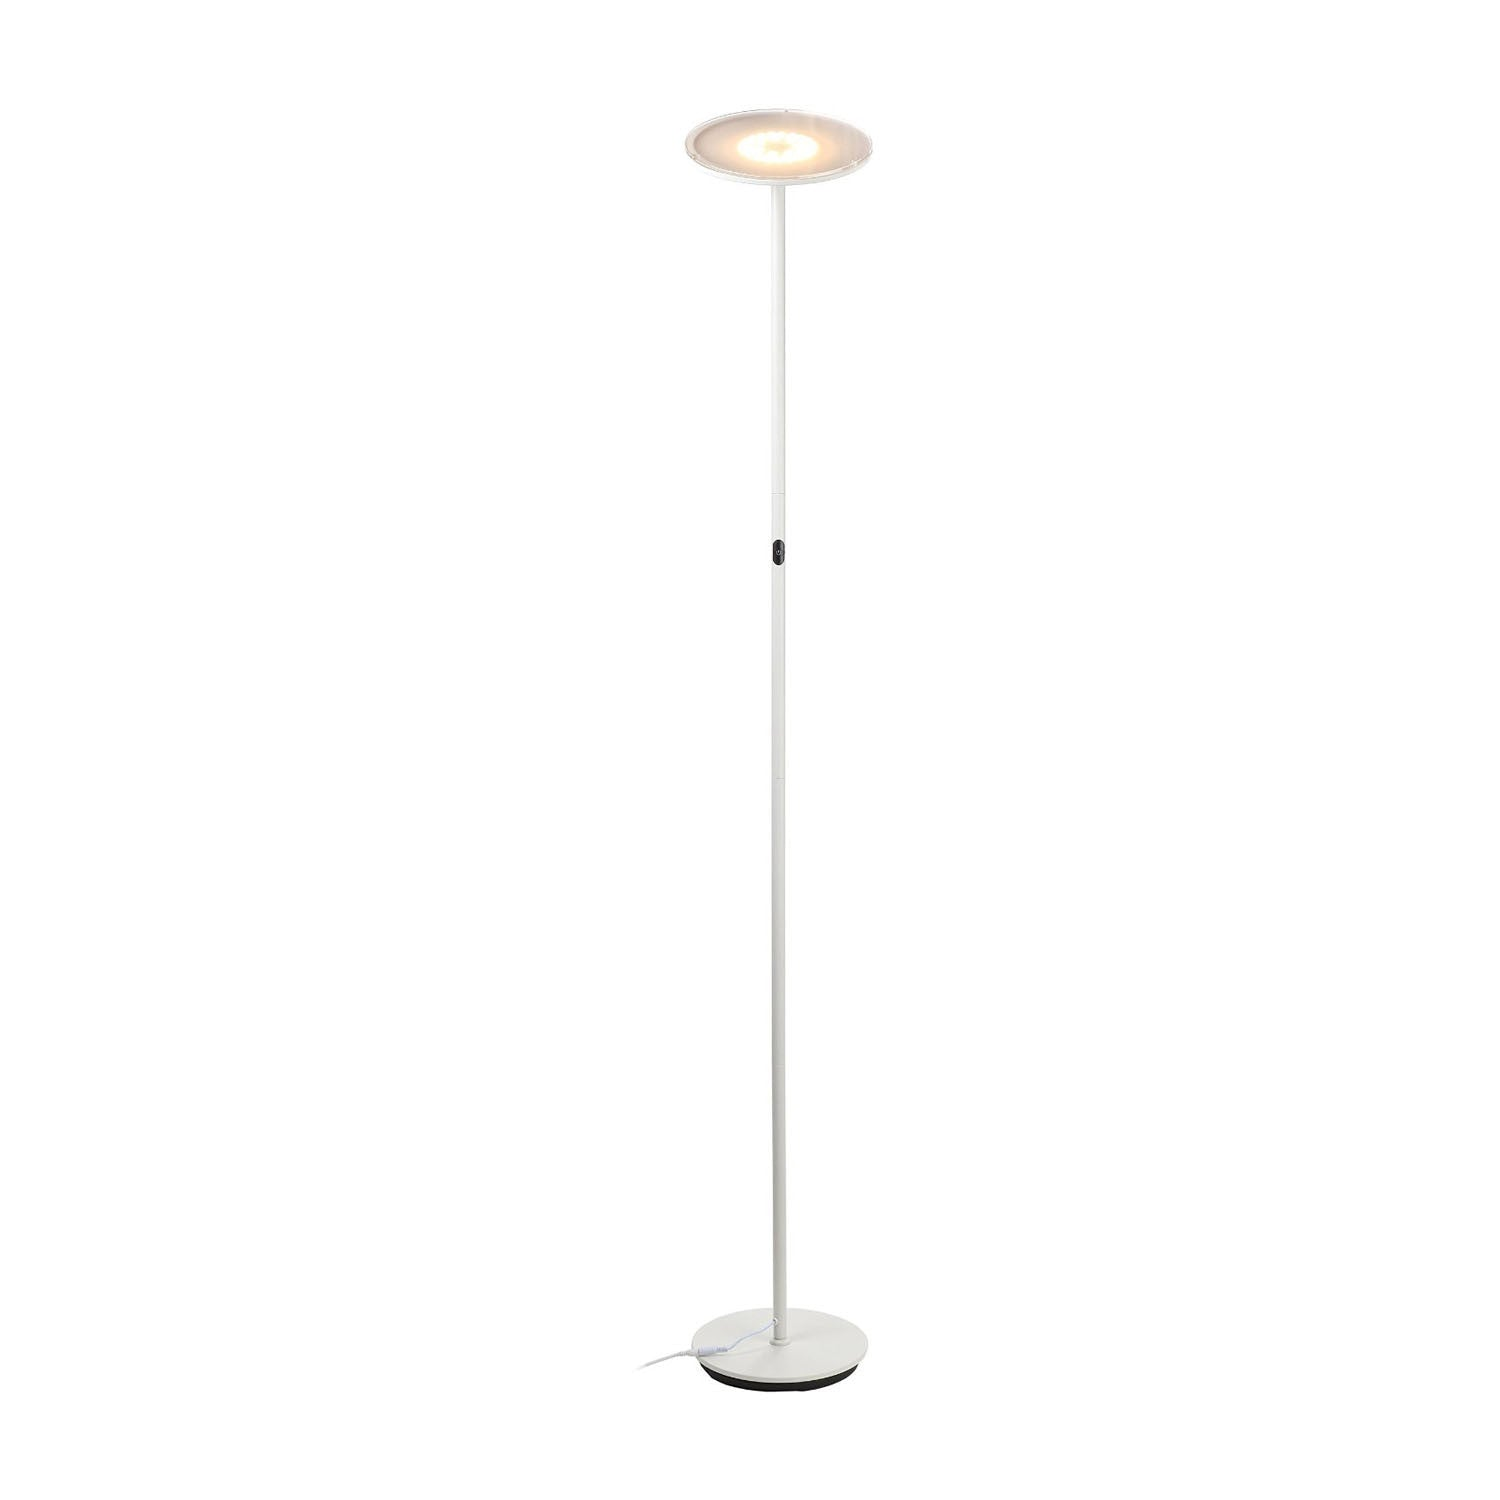 Brightech store sky led torchiere floor lamp dimmable super brightech store sky led torchiere floor lamp dimmable super bright 30 watt led warm white color omni directional head sleek white finish aloadofball Images